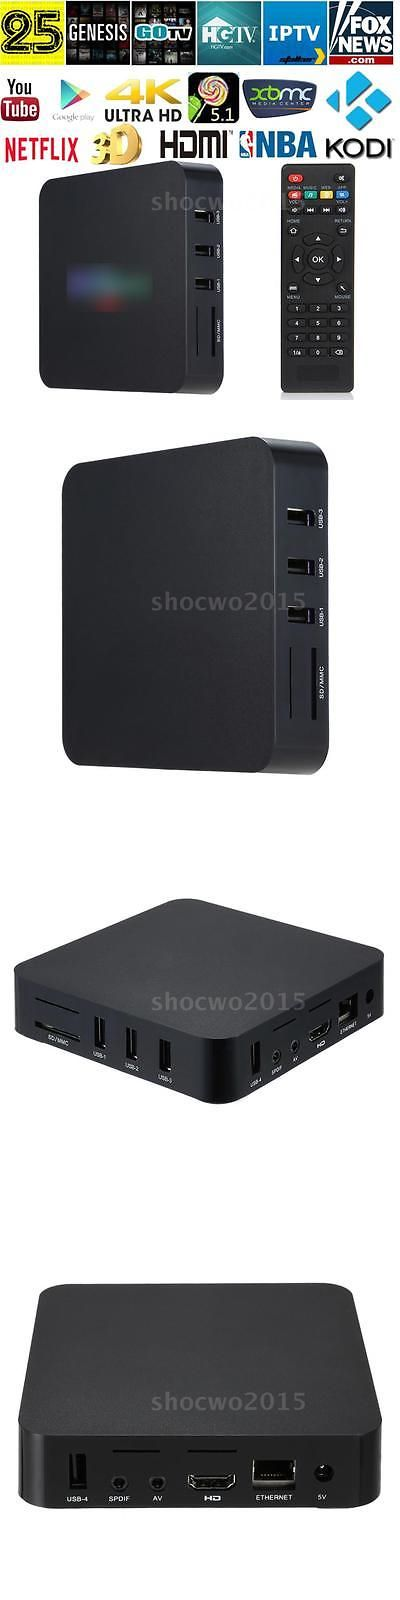 Internet and Media Streamers: Android 6.0 Tv Box S905x 4K Digital Tv Streaming Box Quad Core Wifi Media Player -> BUY IT NOW ONLY: $35.68 on eBay!